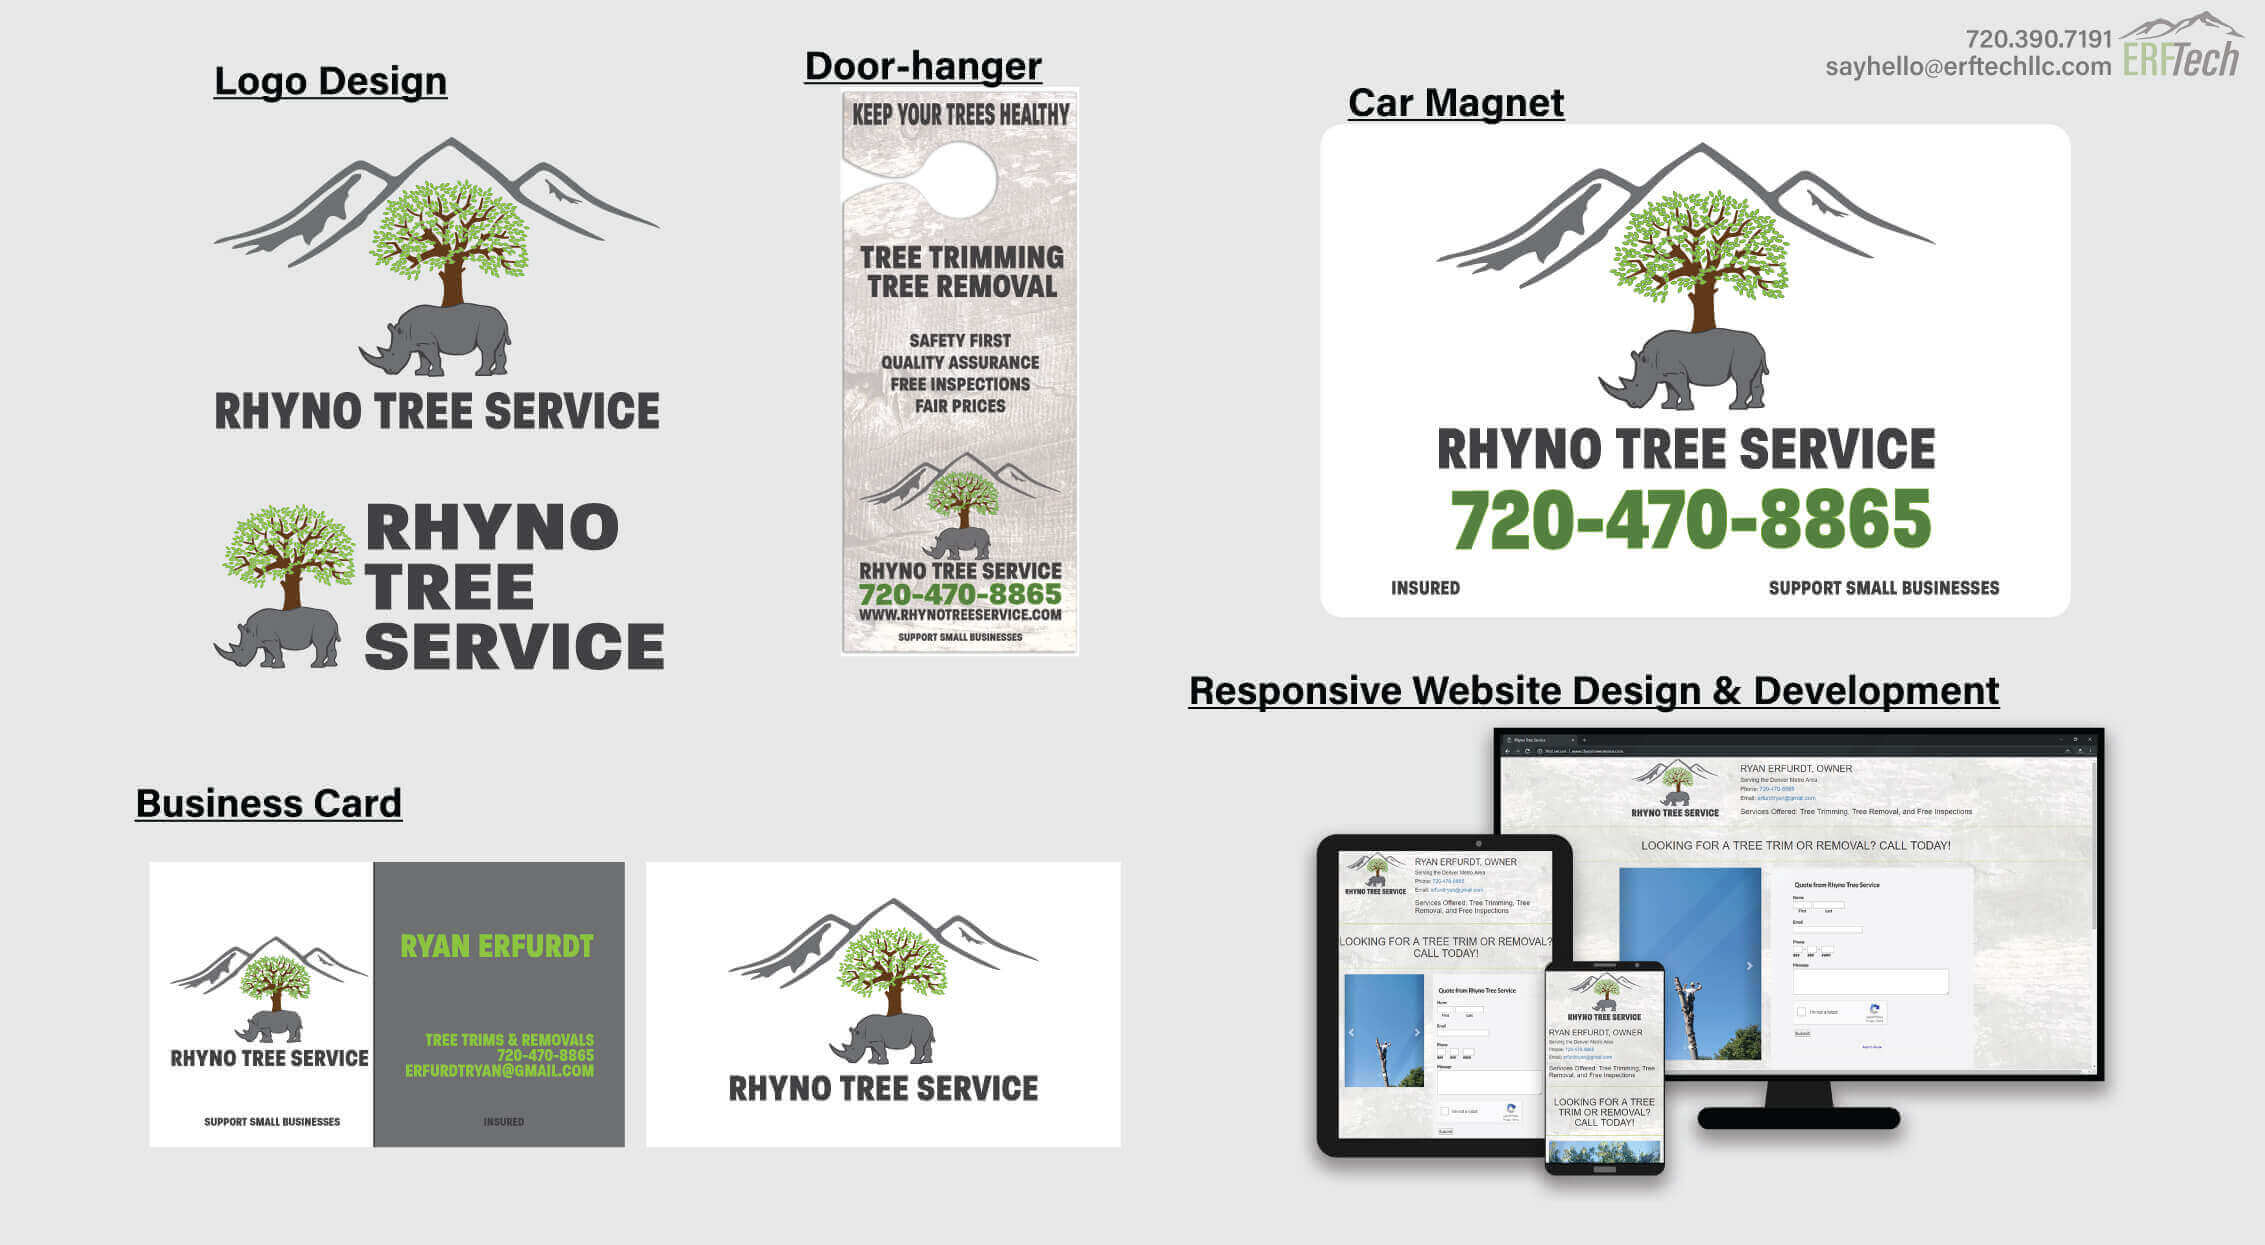 Full-Service Marketing for Rhyno Tree Service in Littleton, CO